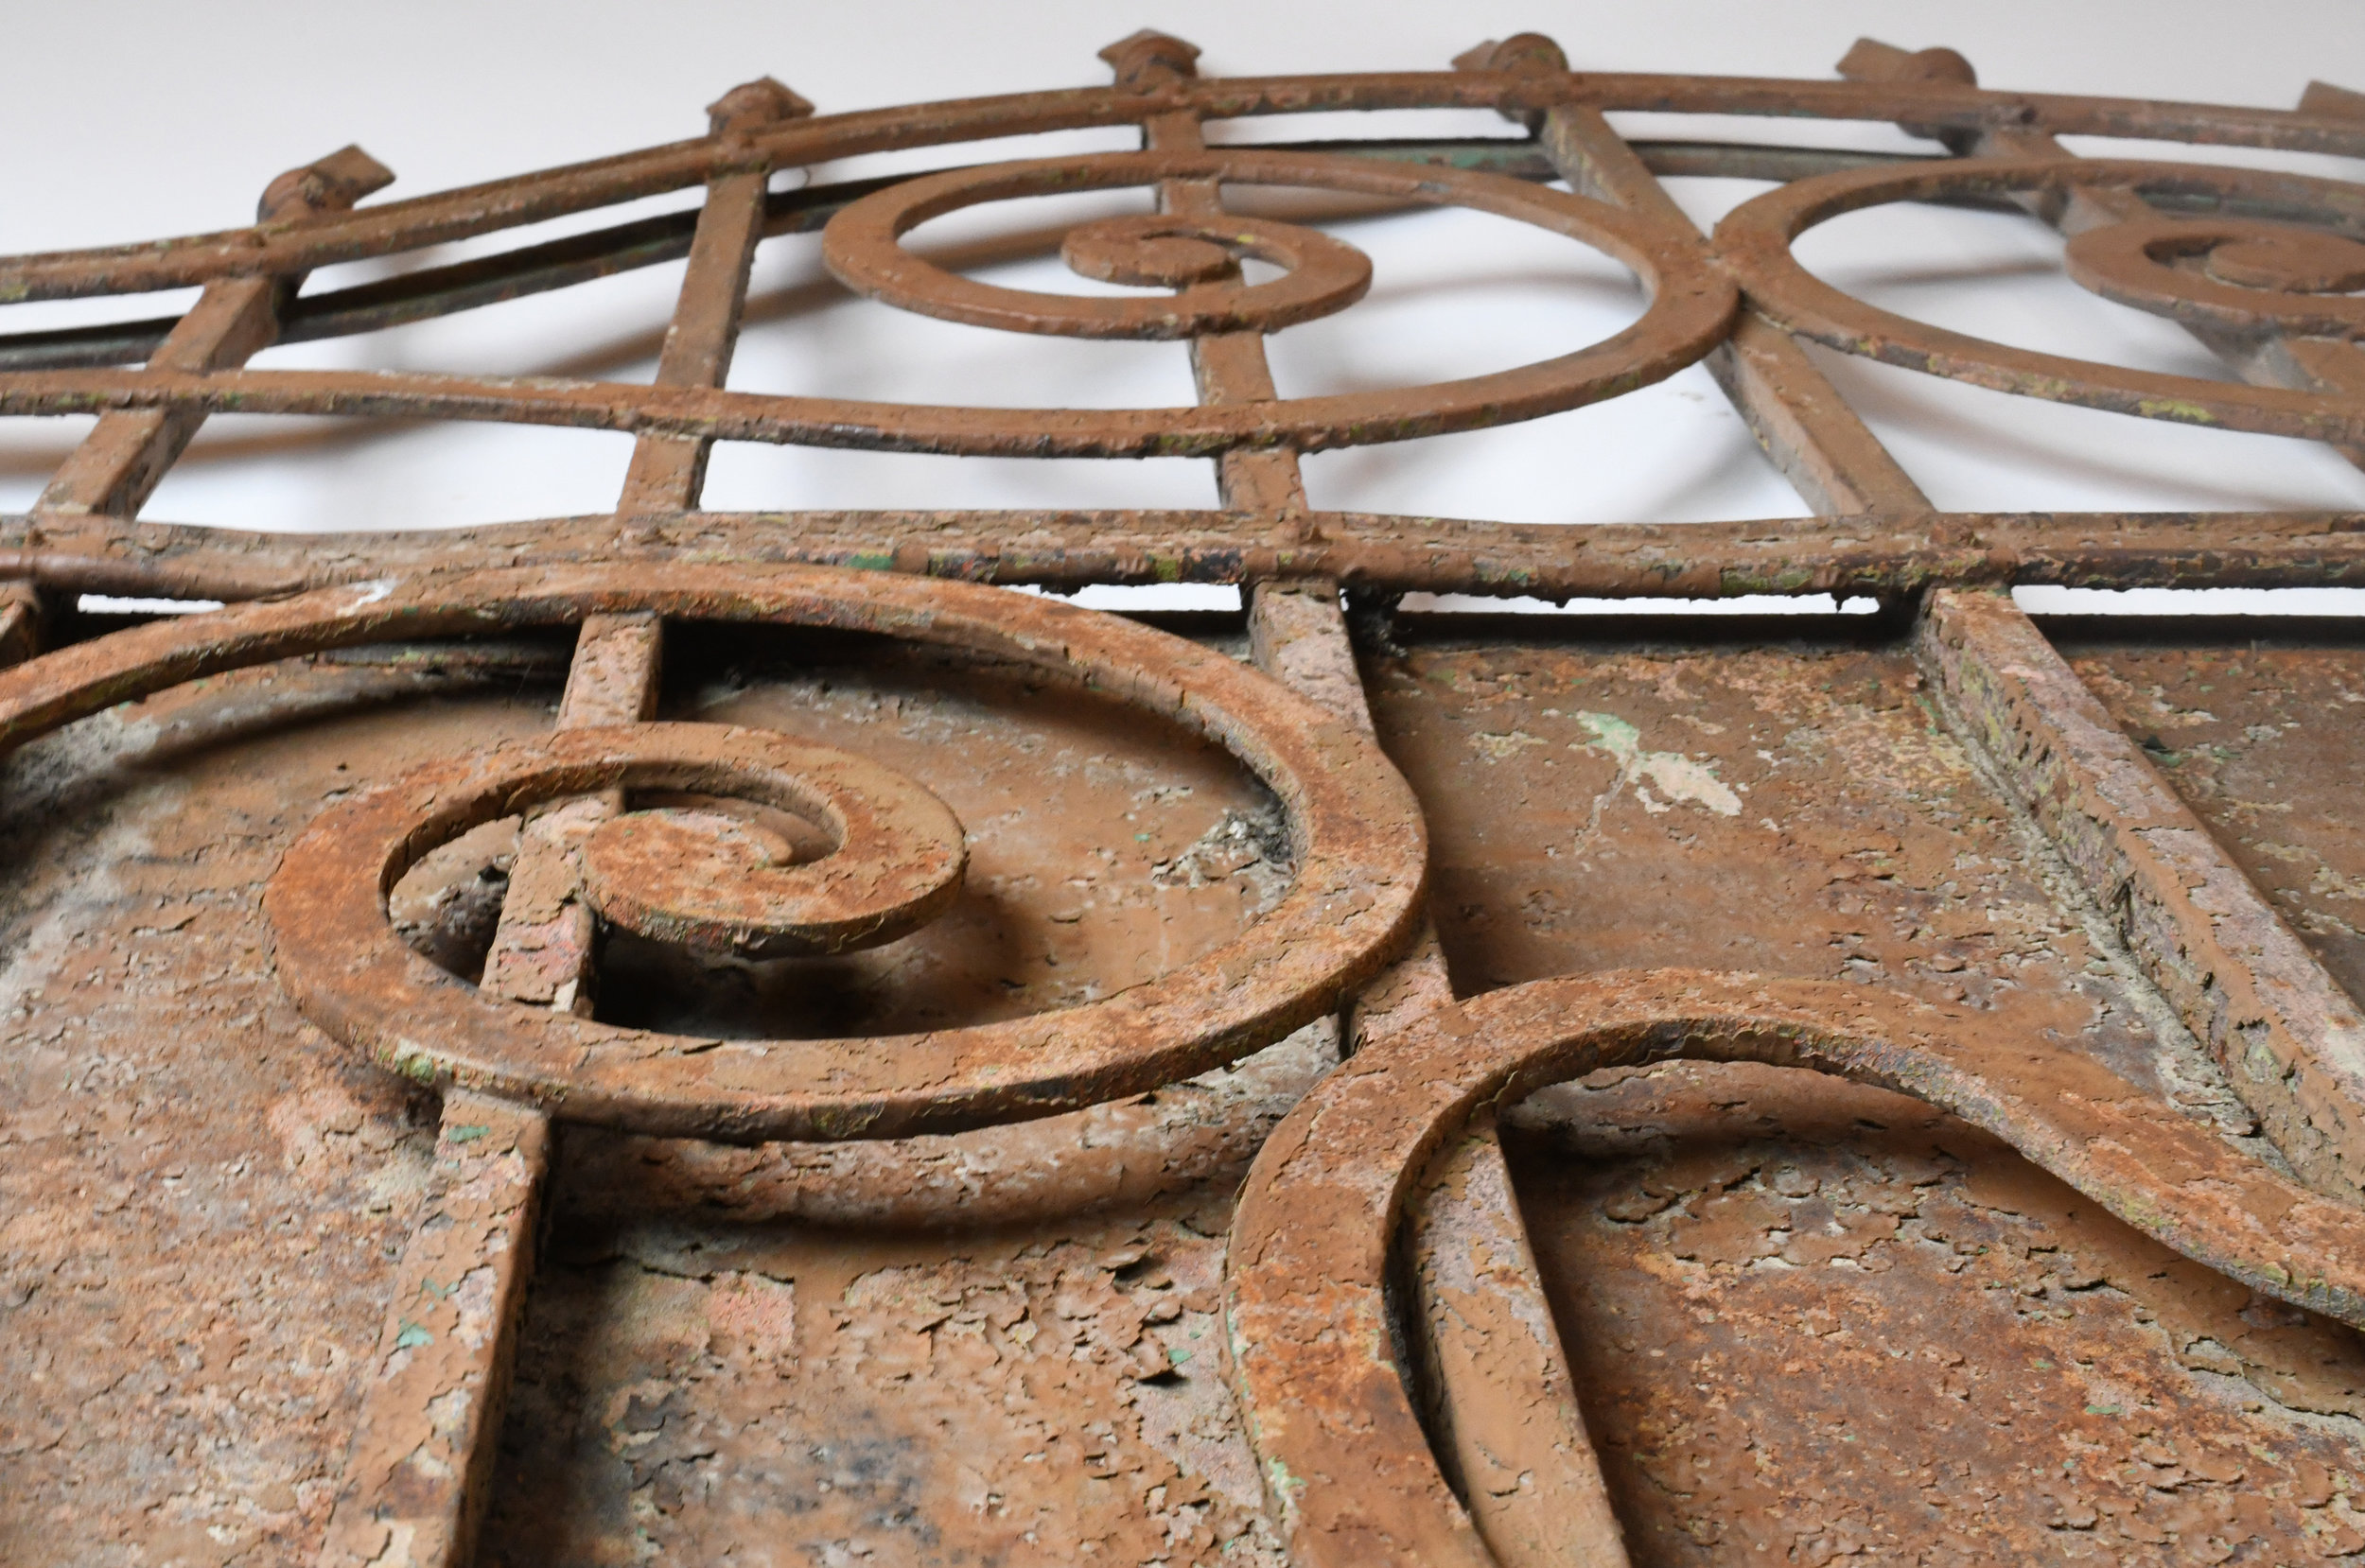 47498-Arched-iron-gate-detail-2.jpg